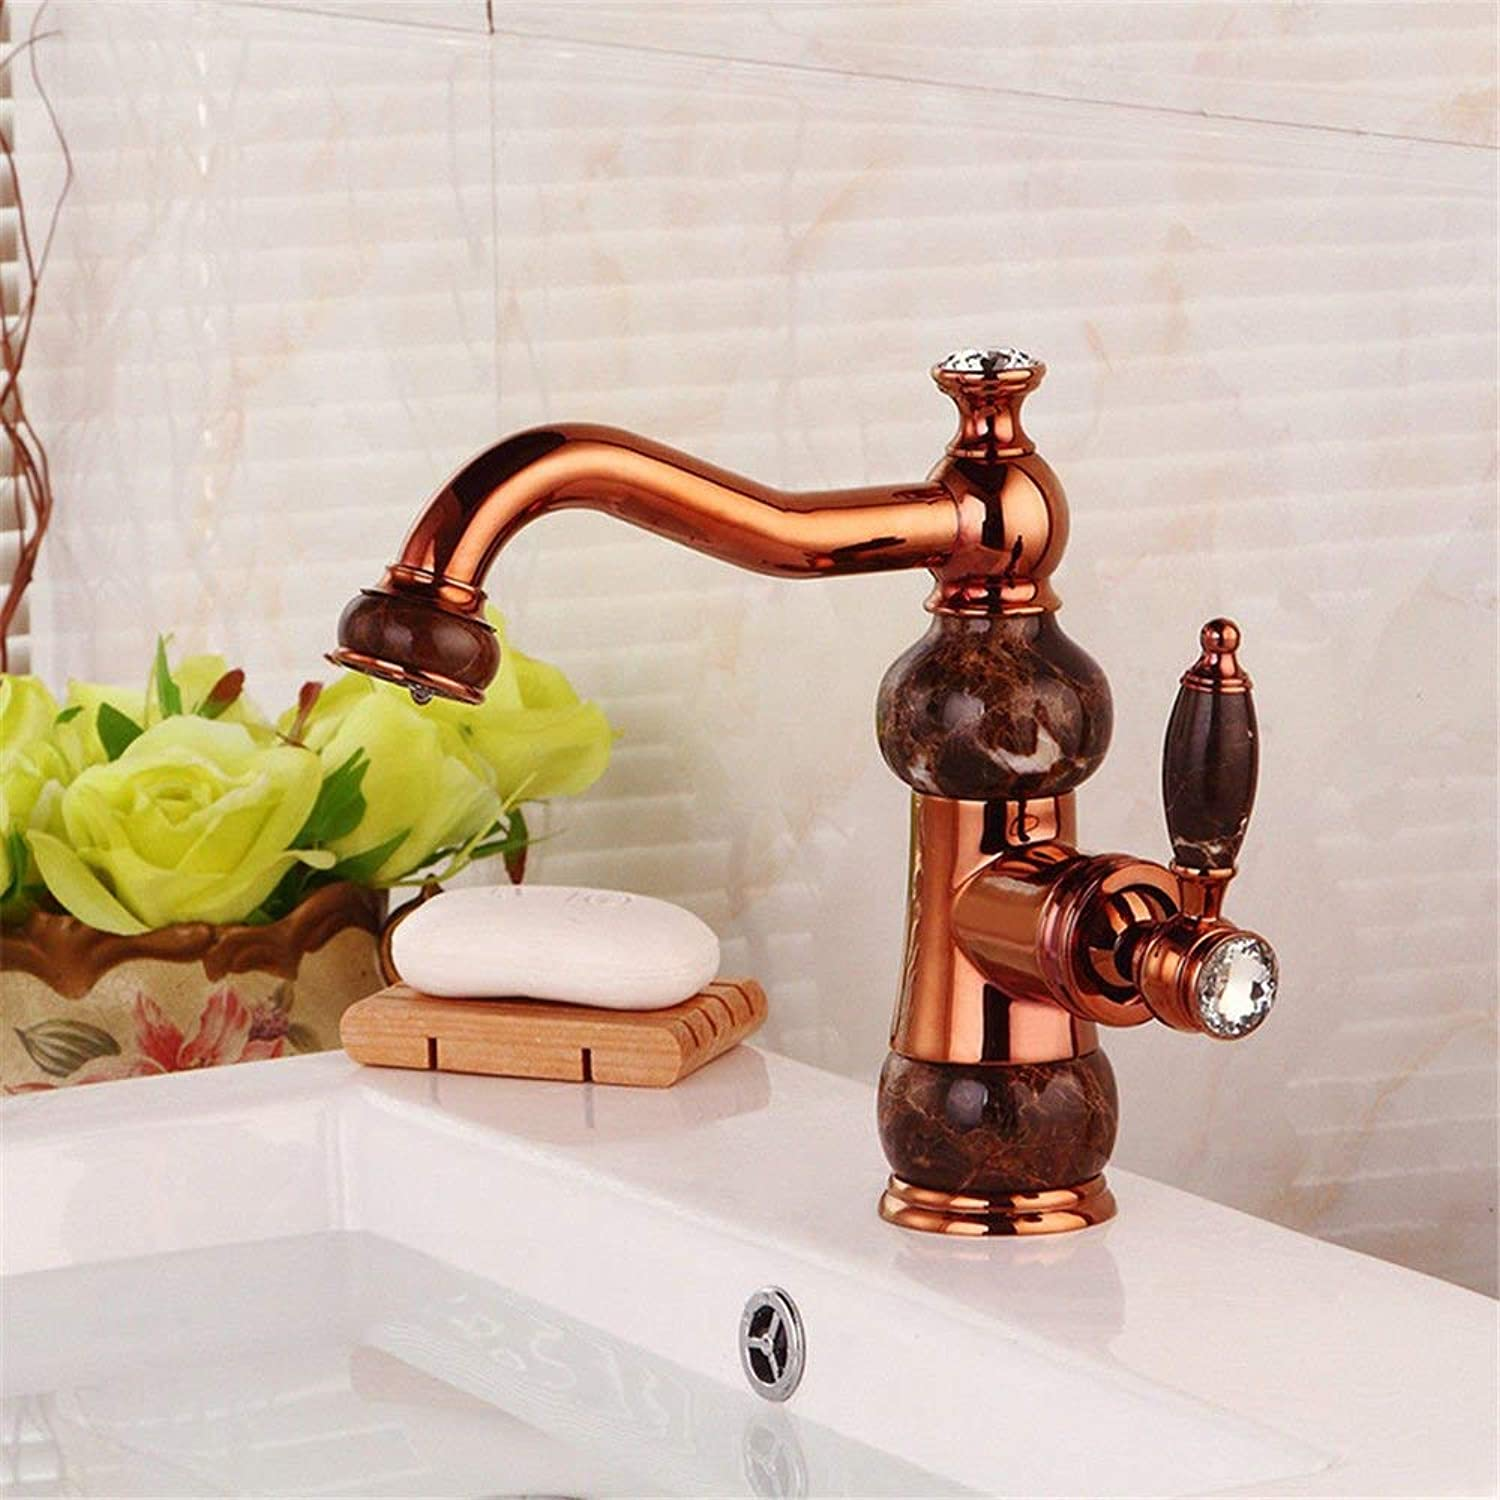 HUAIX home Sink Mixer Tap Bathroom Kitchen Basin Tap Leakproof Save Water Rise Antique Style